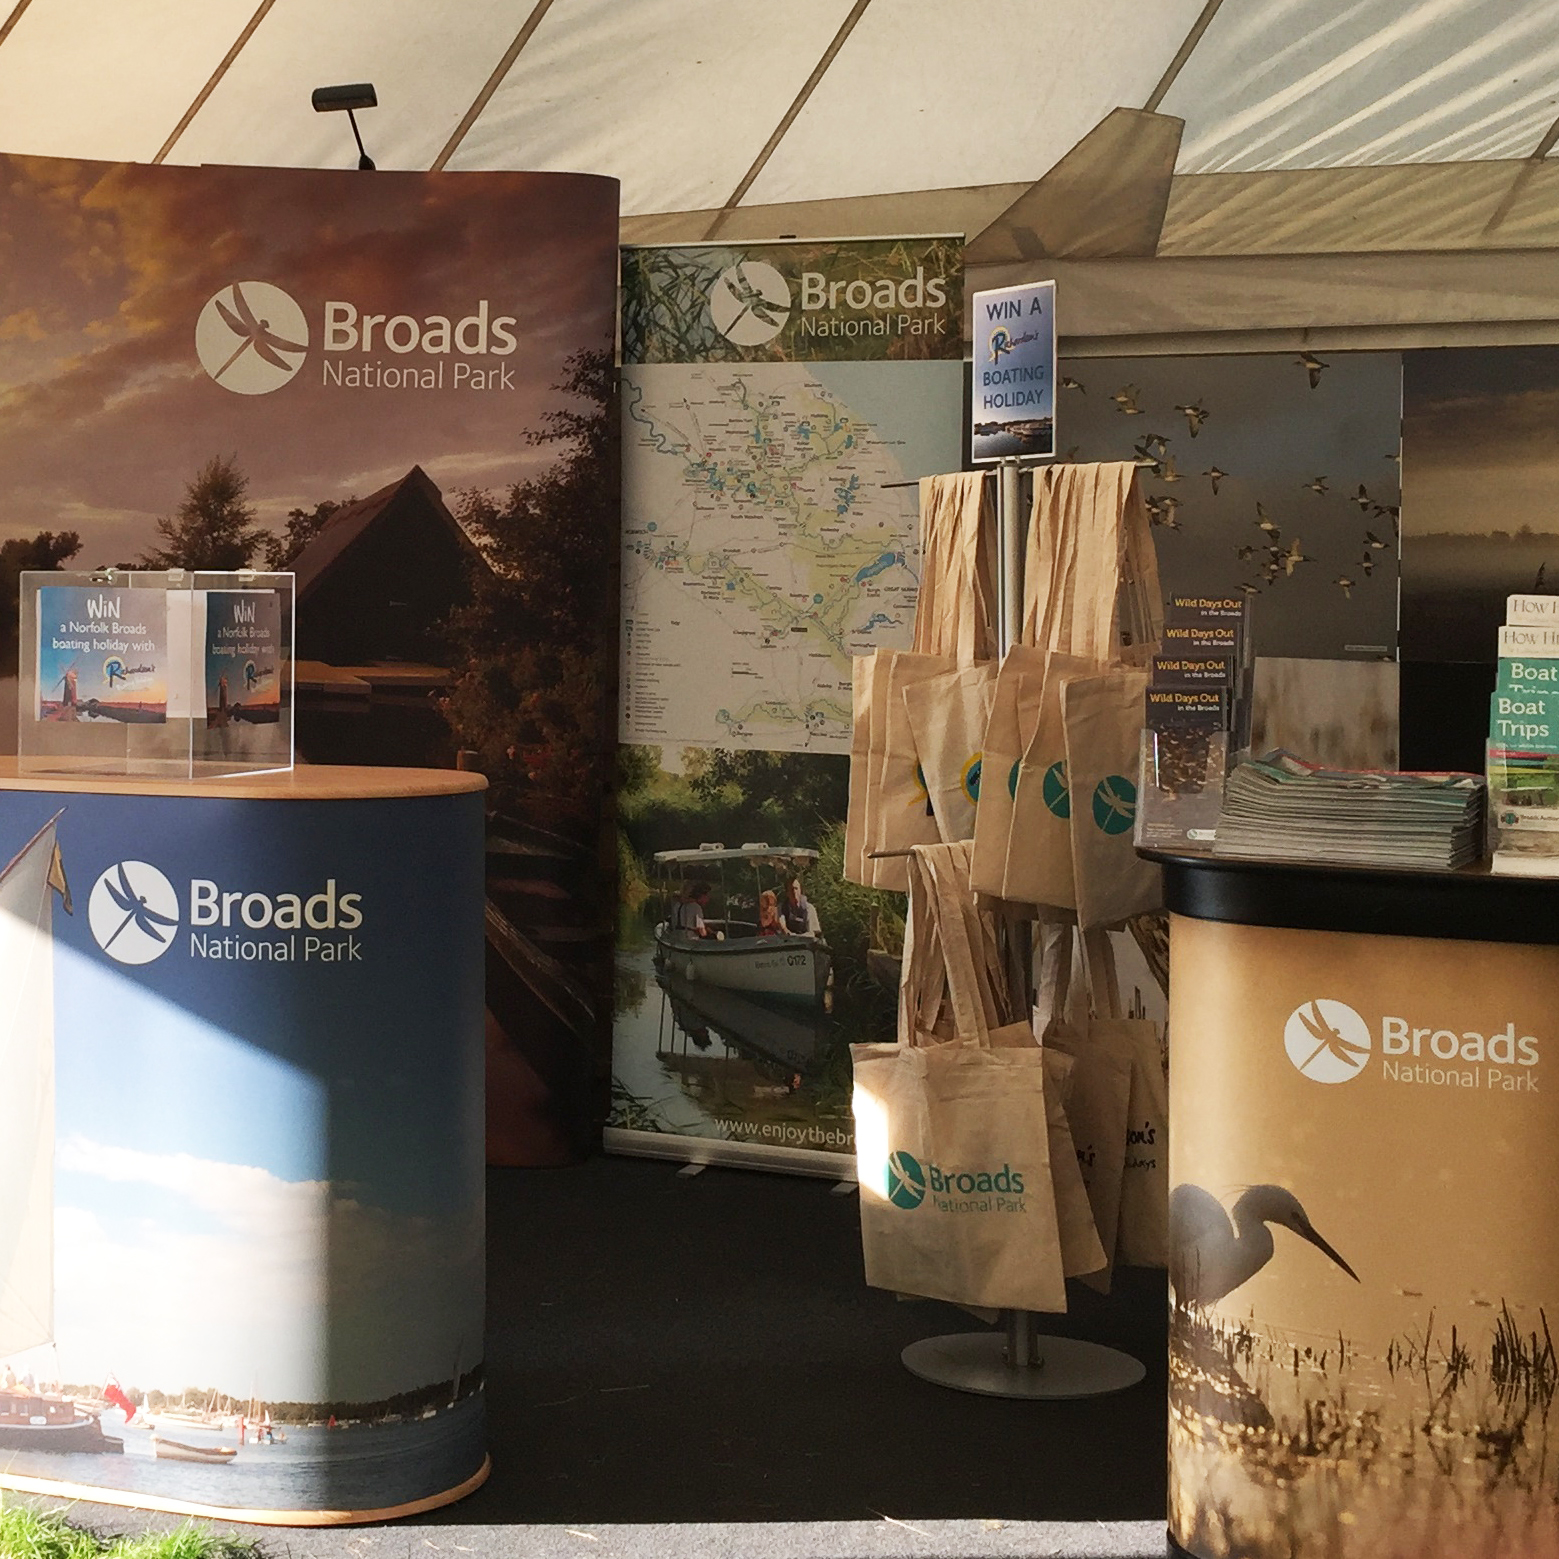 Broads National Park exhibition stand with carrier bags